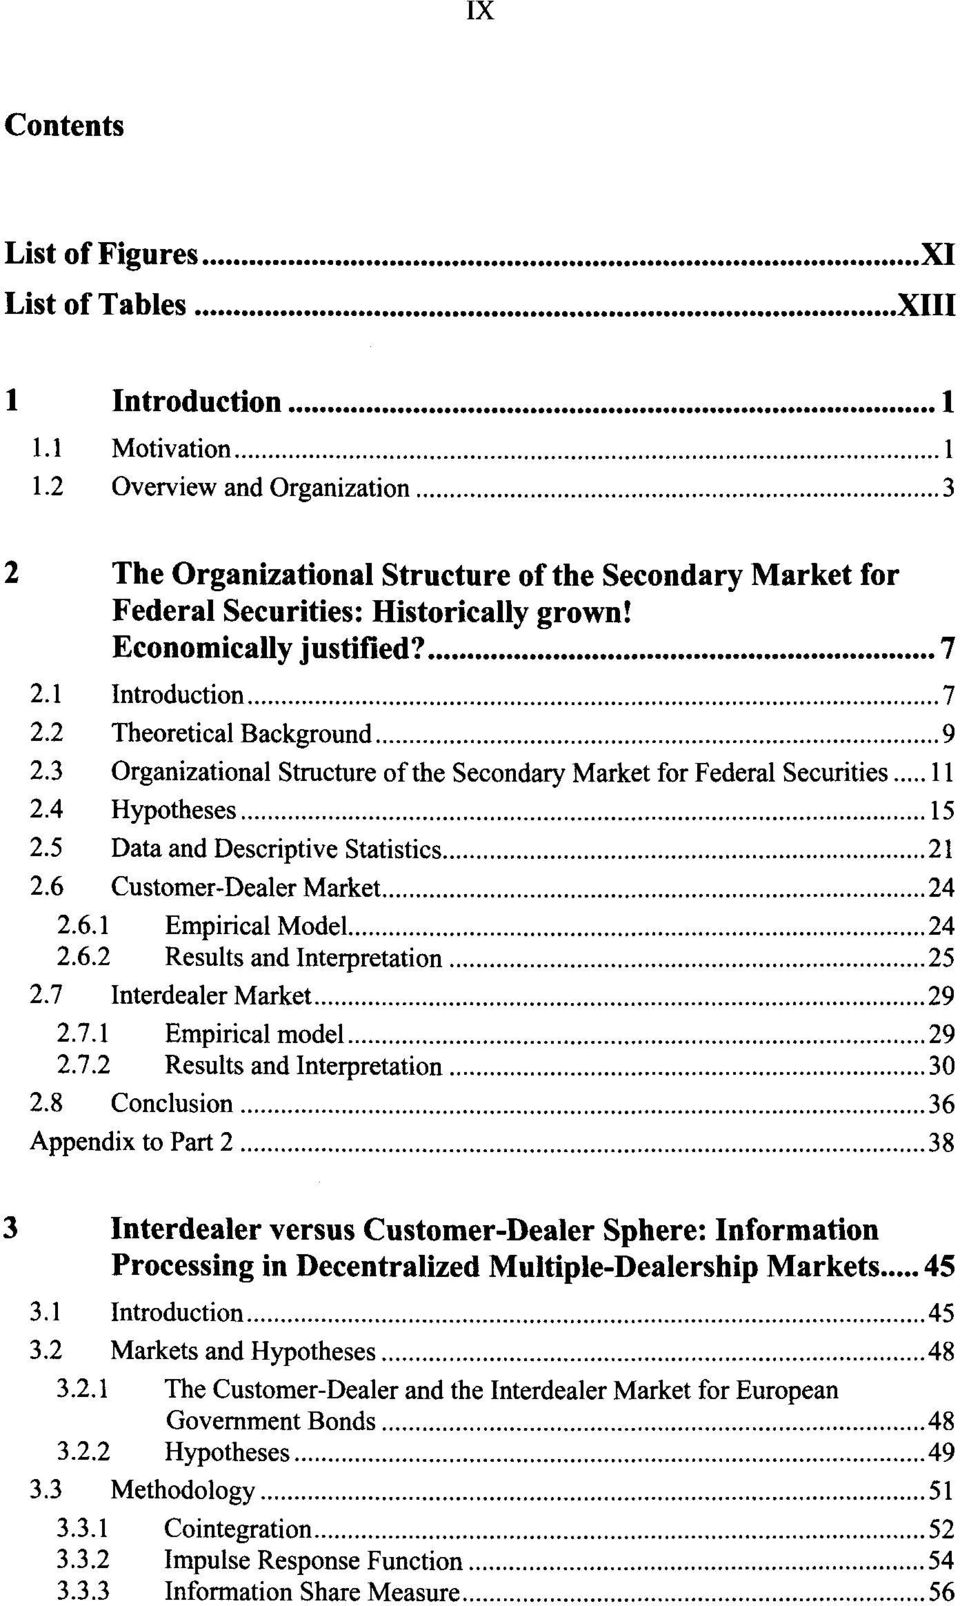 2 Theoretical Background 9 2.3 Organizational Structure of the Secondary Market for Federal Securities 11 2.4 Hypotheses 15 2.5 Data and Descriptive Statistics 21 2.6 Customer-Dealer Market 24 2.6.1 Empirical Model 24 2.